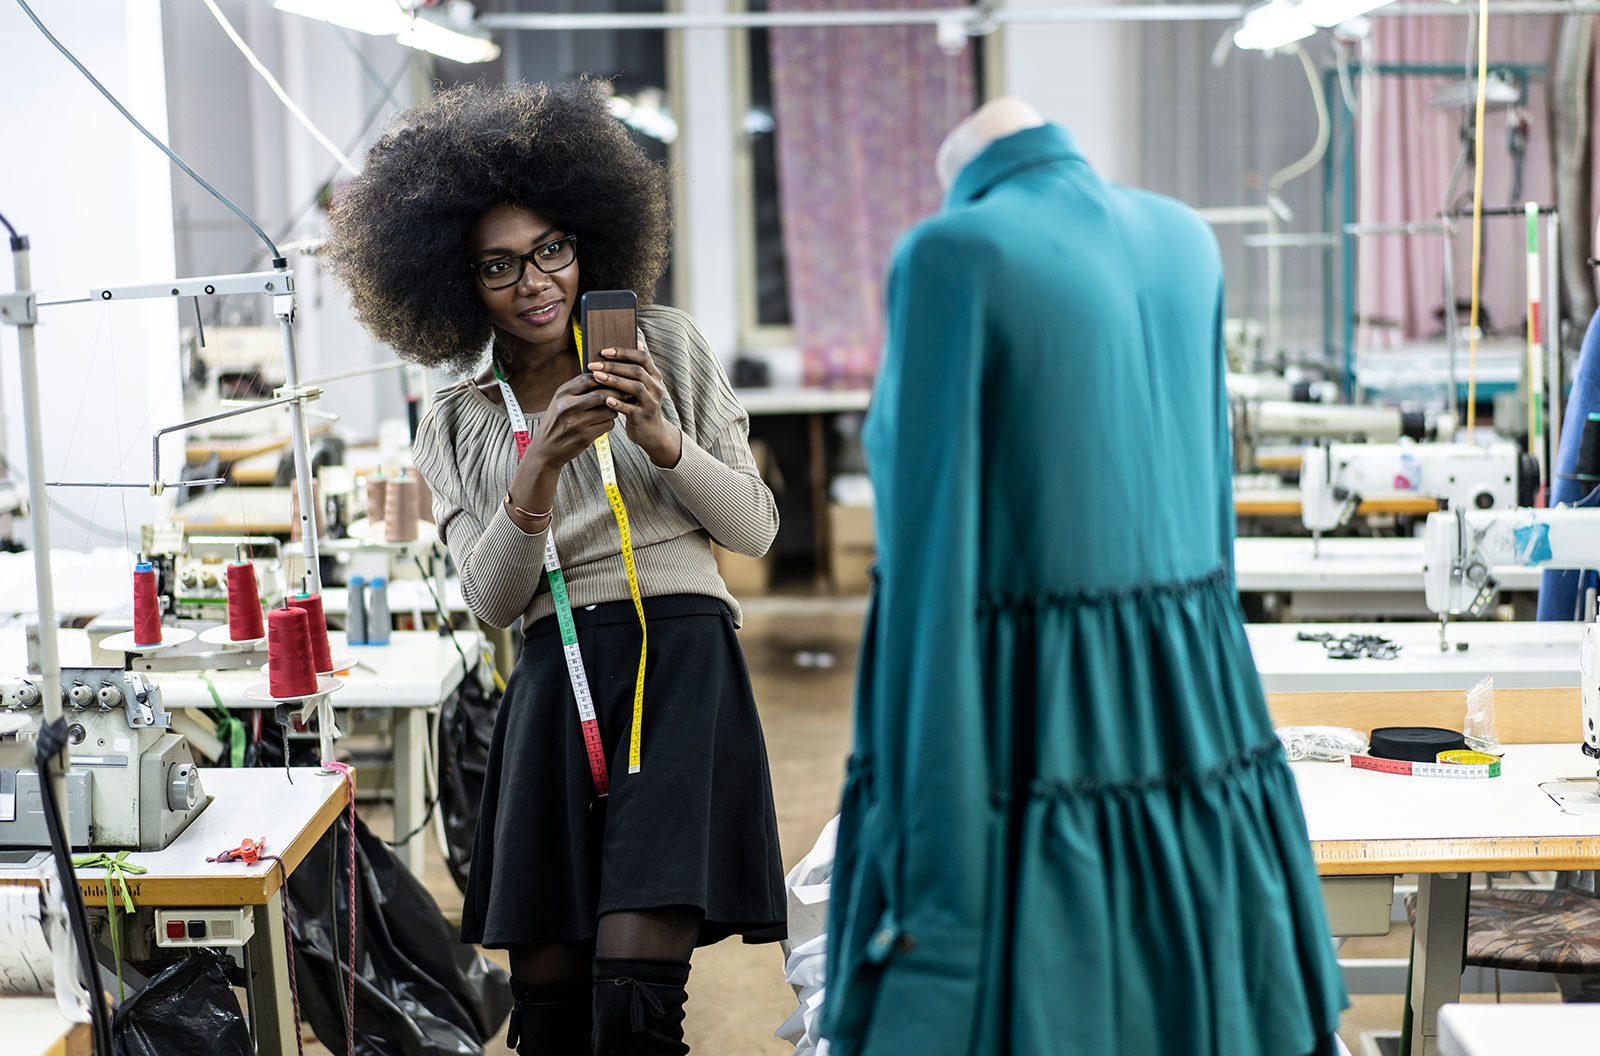 A female fashion designer with a tape measure draped over her takes a photograph of the dress that she's working on